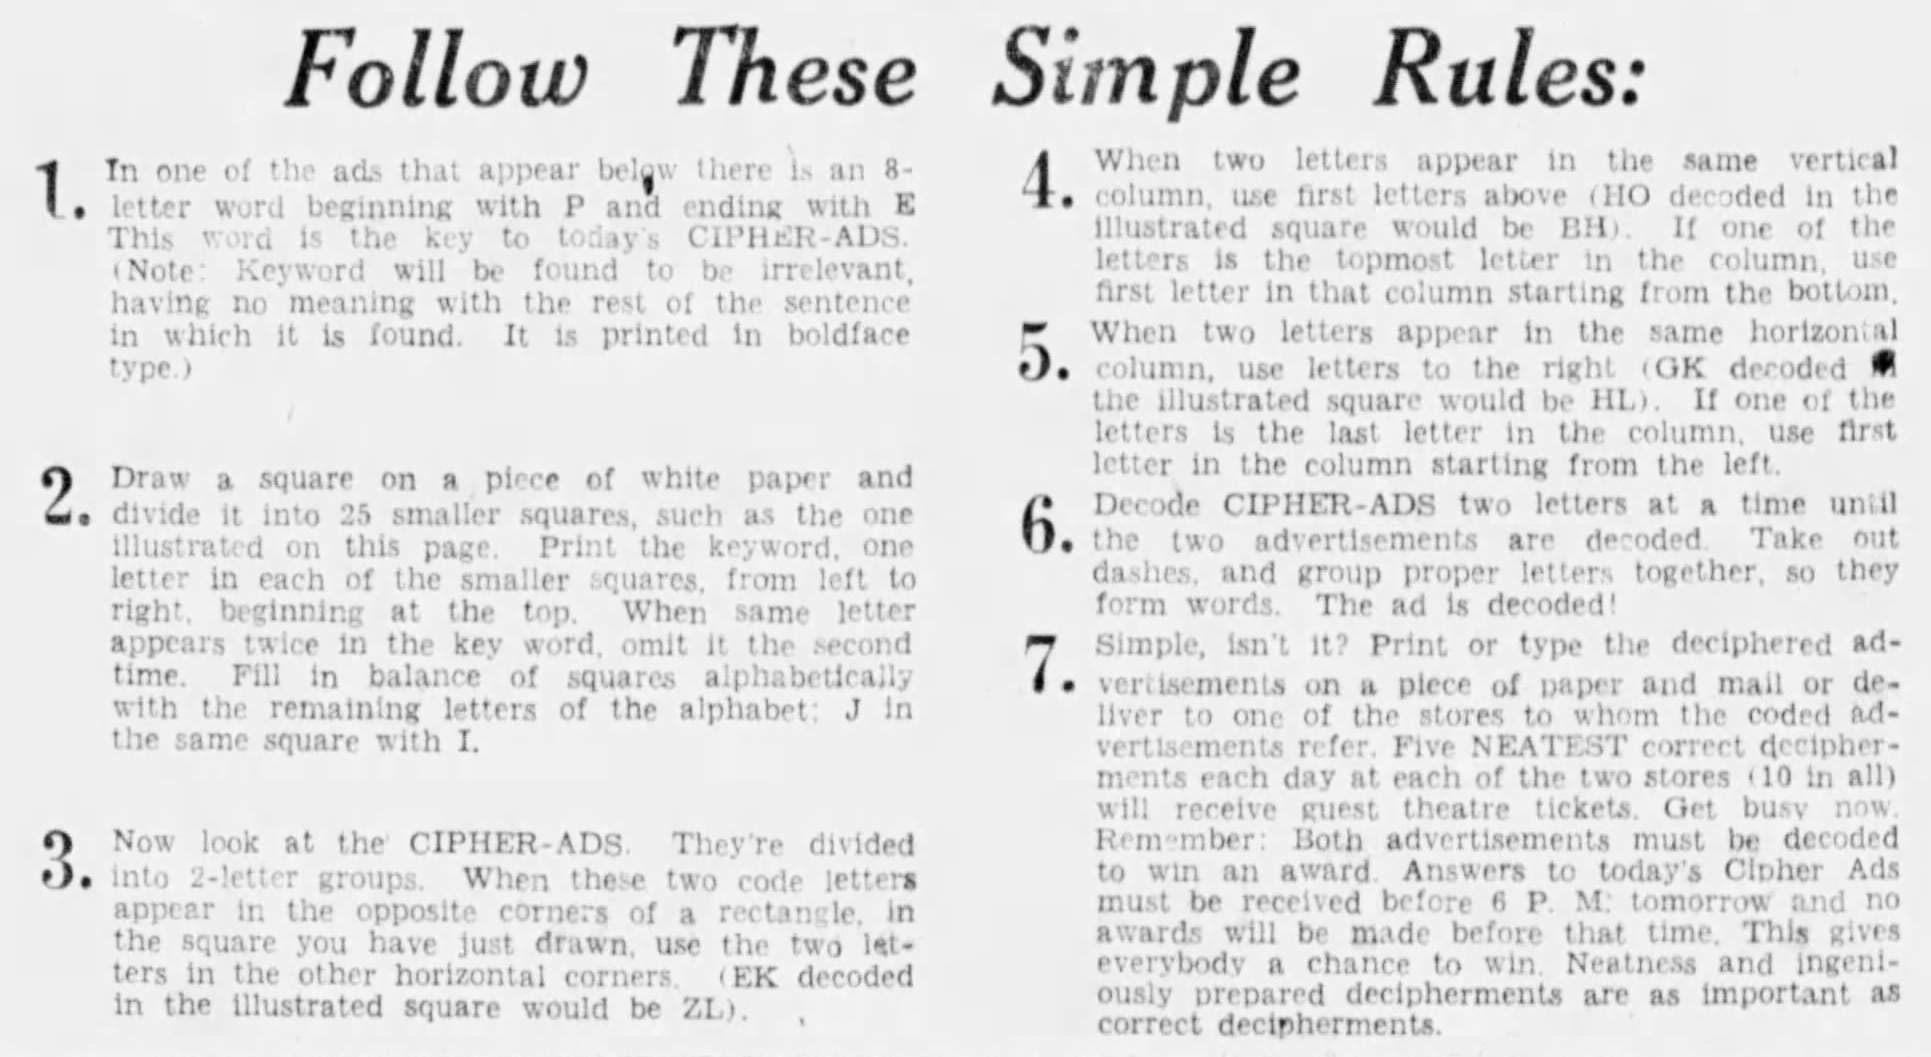 Cipher-Ads--1935-03-04-Rules